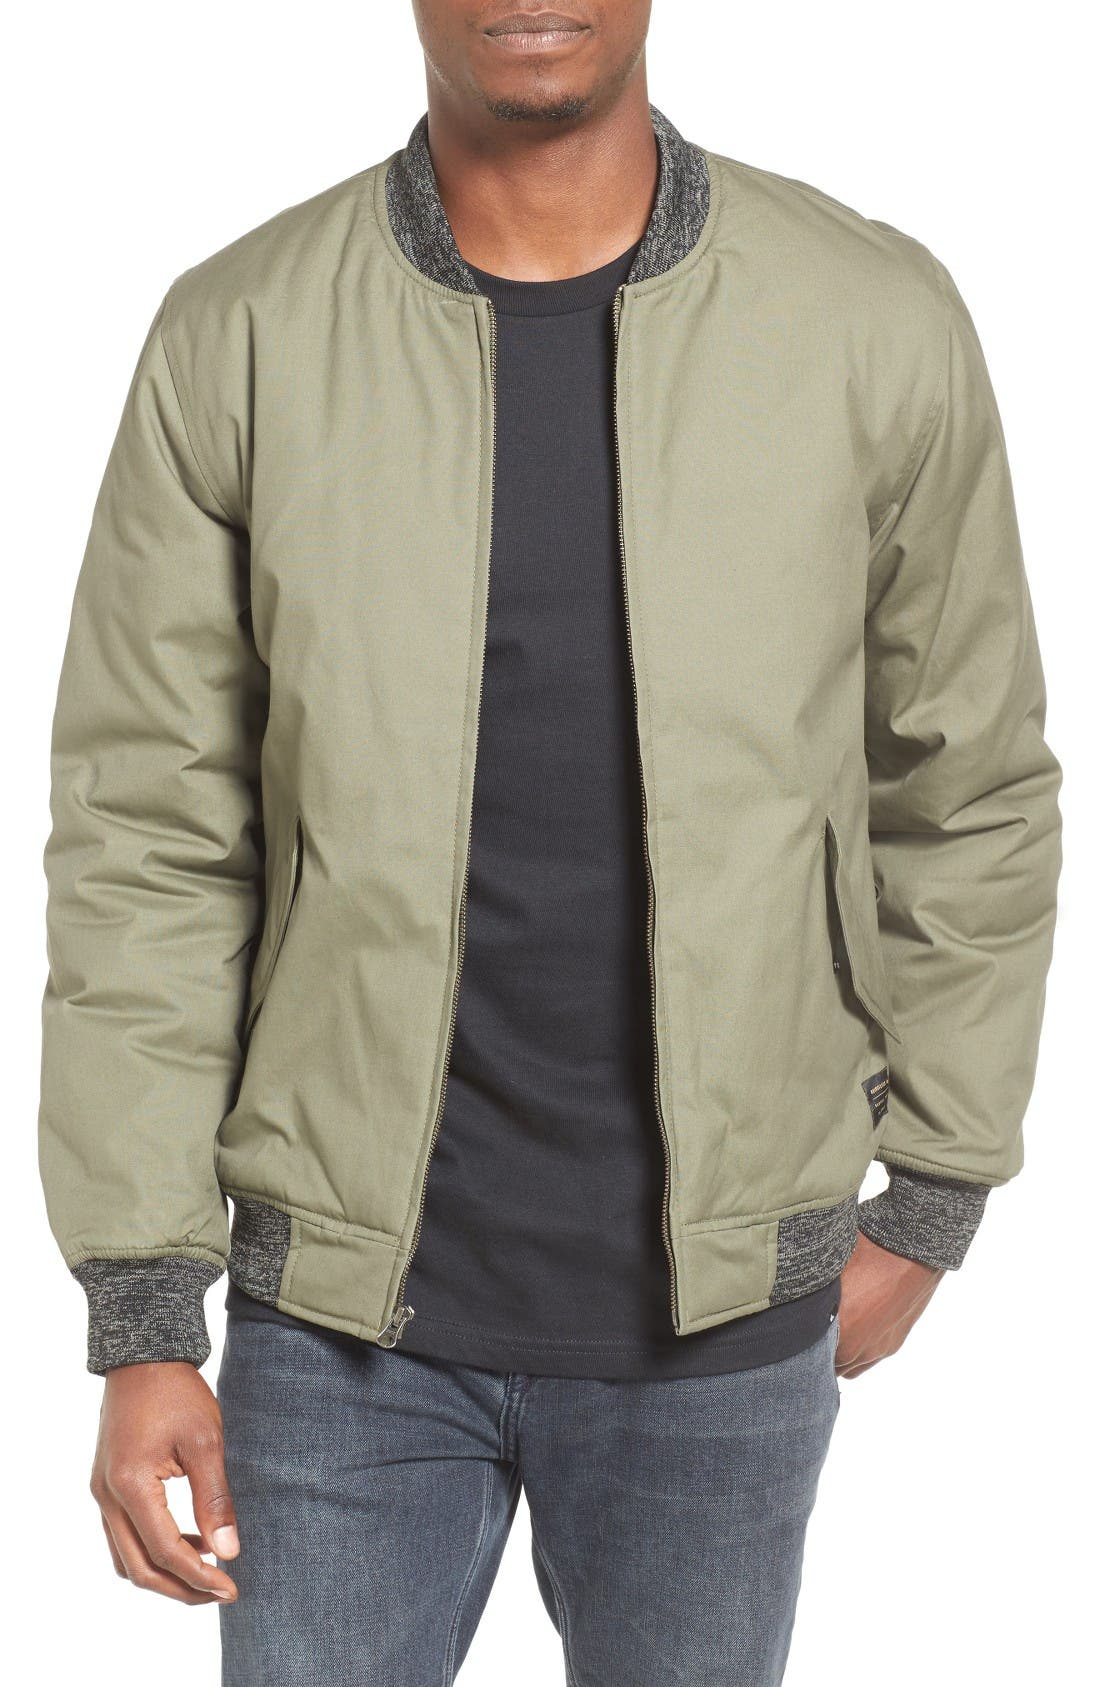 Quiksilver Mixing Time Bomber Jacket